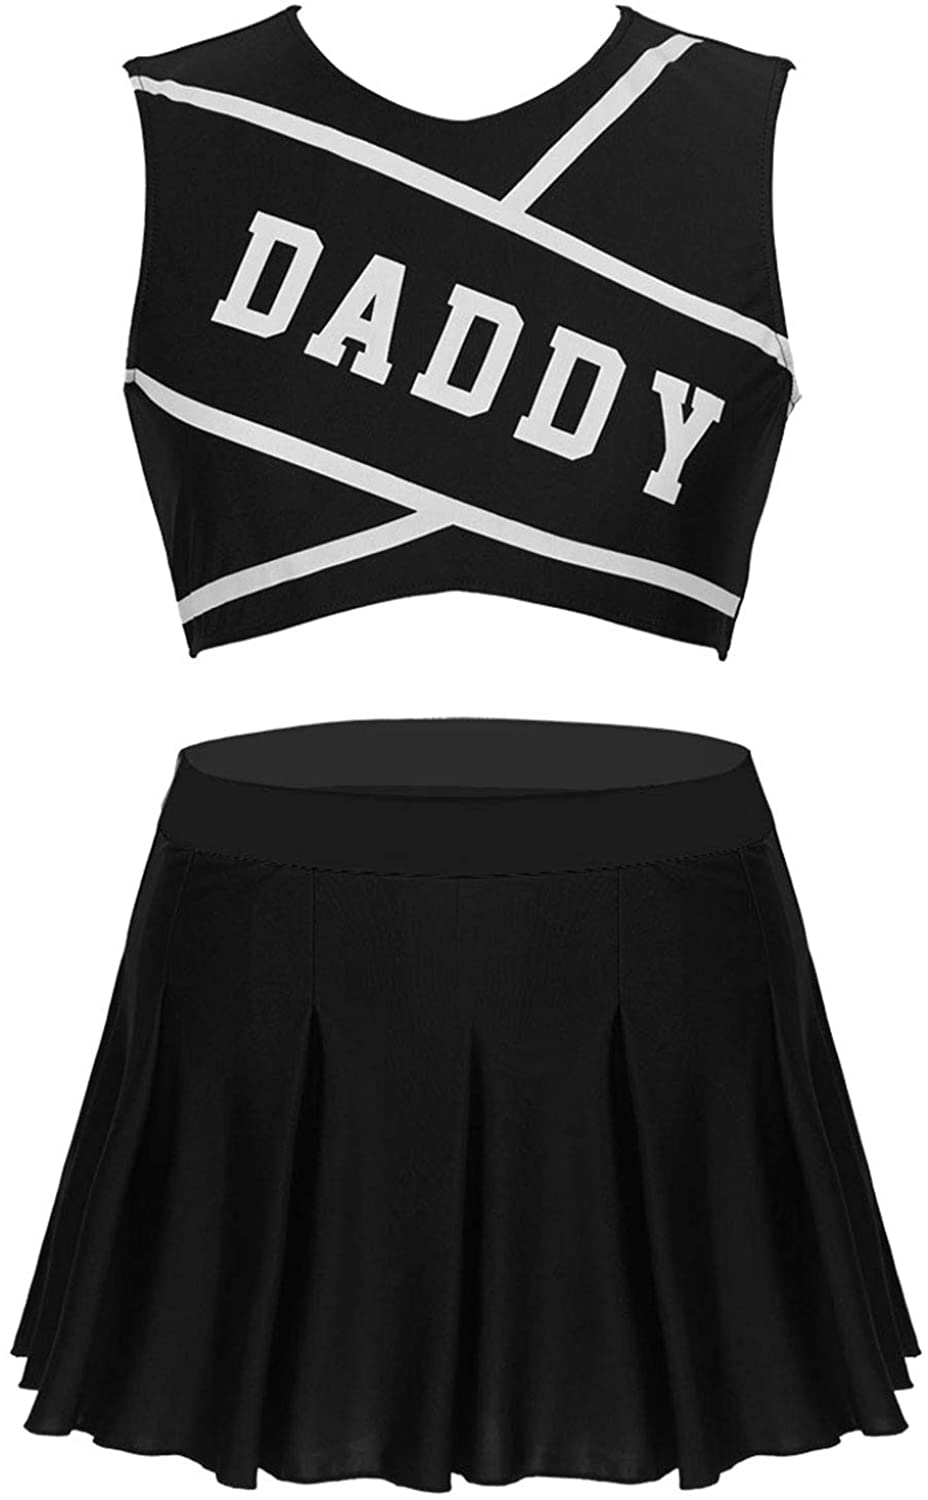 YiZYiF Women's Daddy Printed Cheer Leader Uniform Dress Cheerleading Role Play Outfit Set